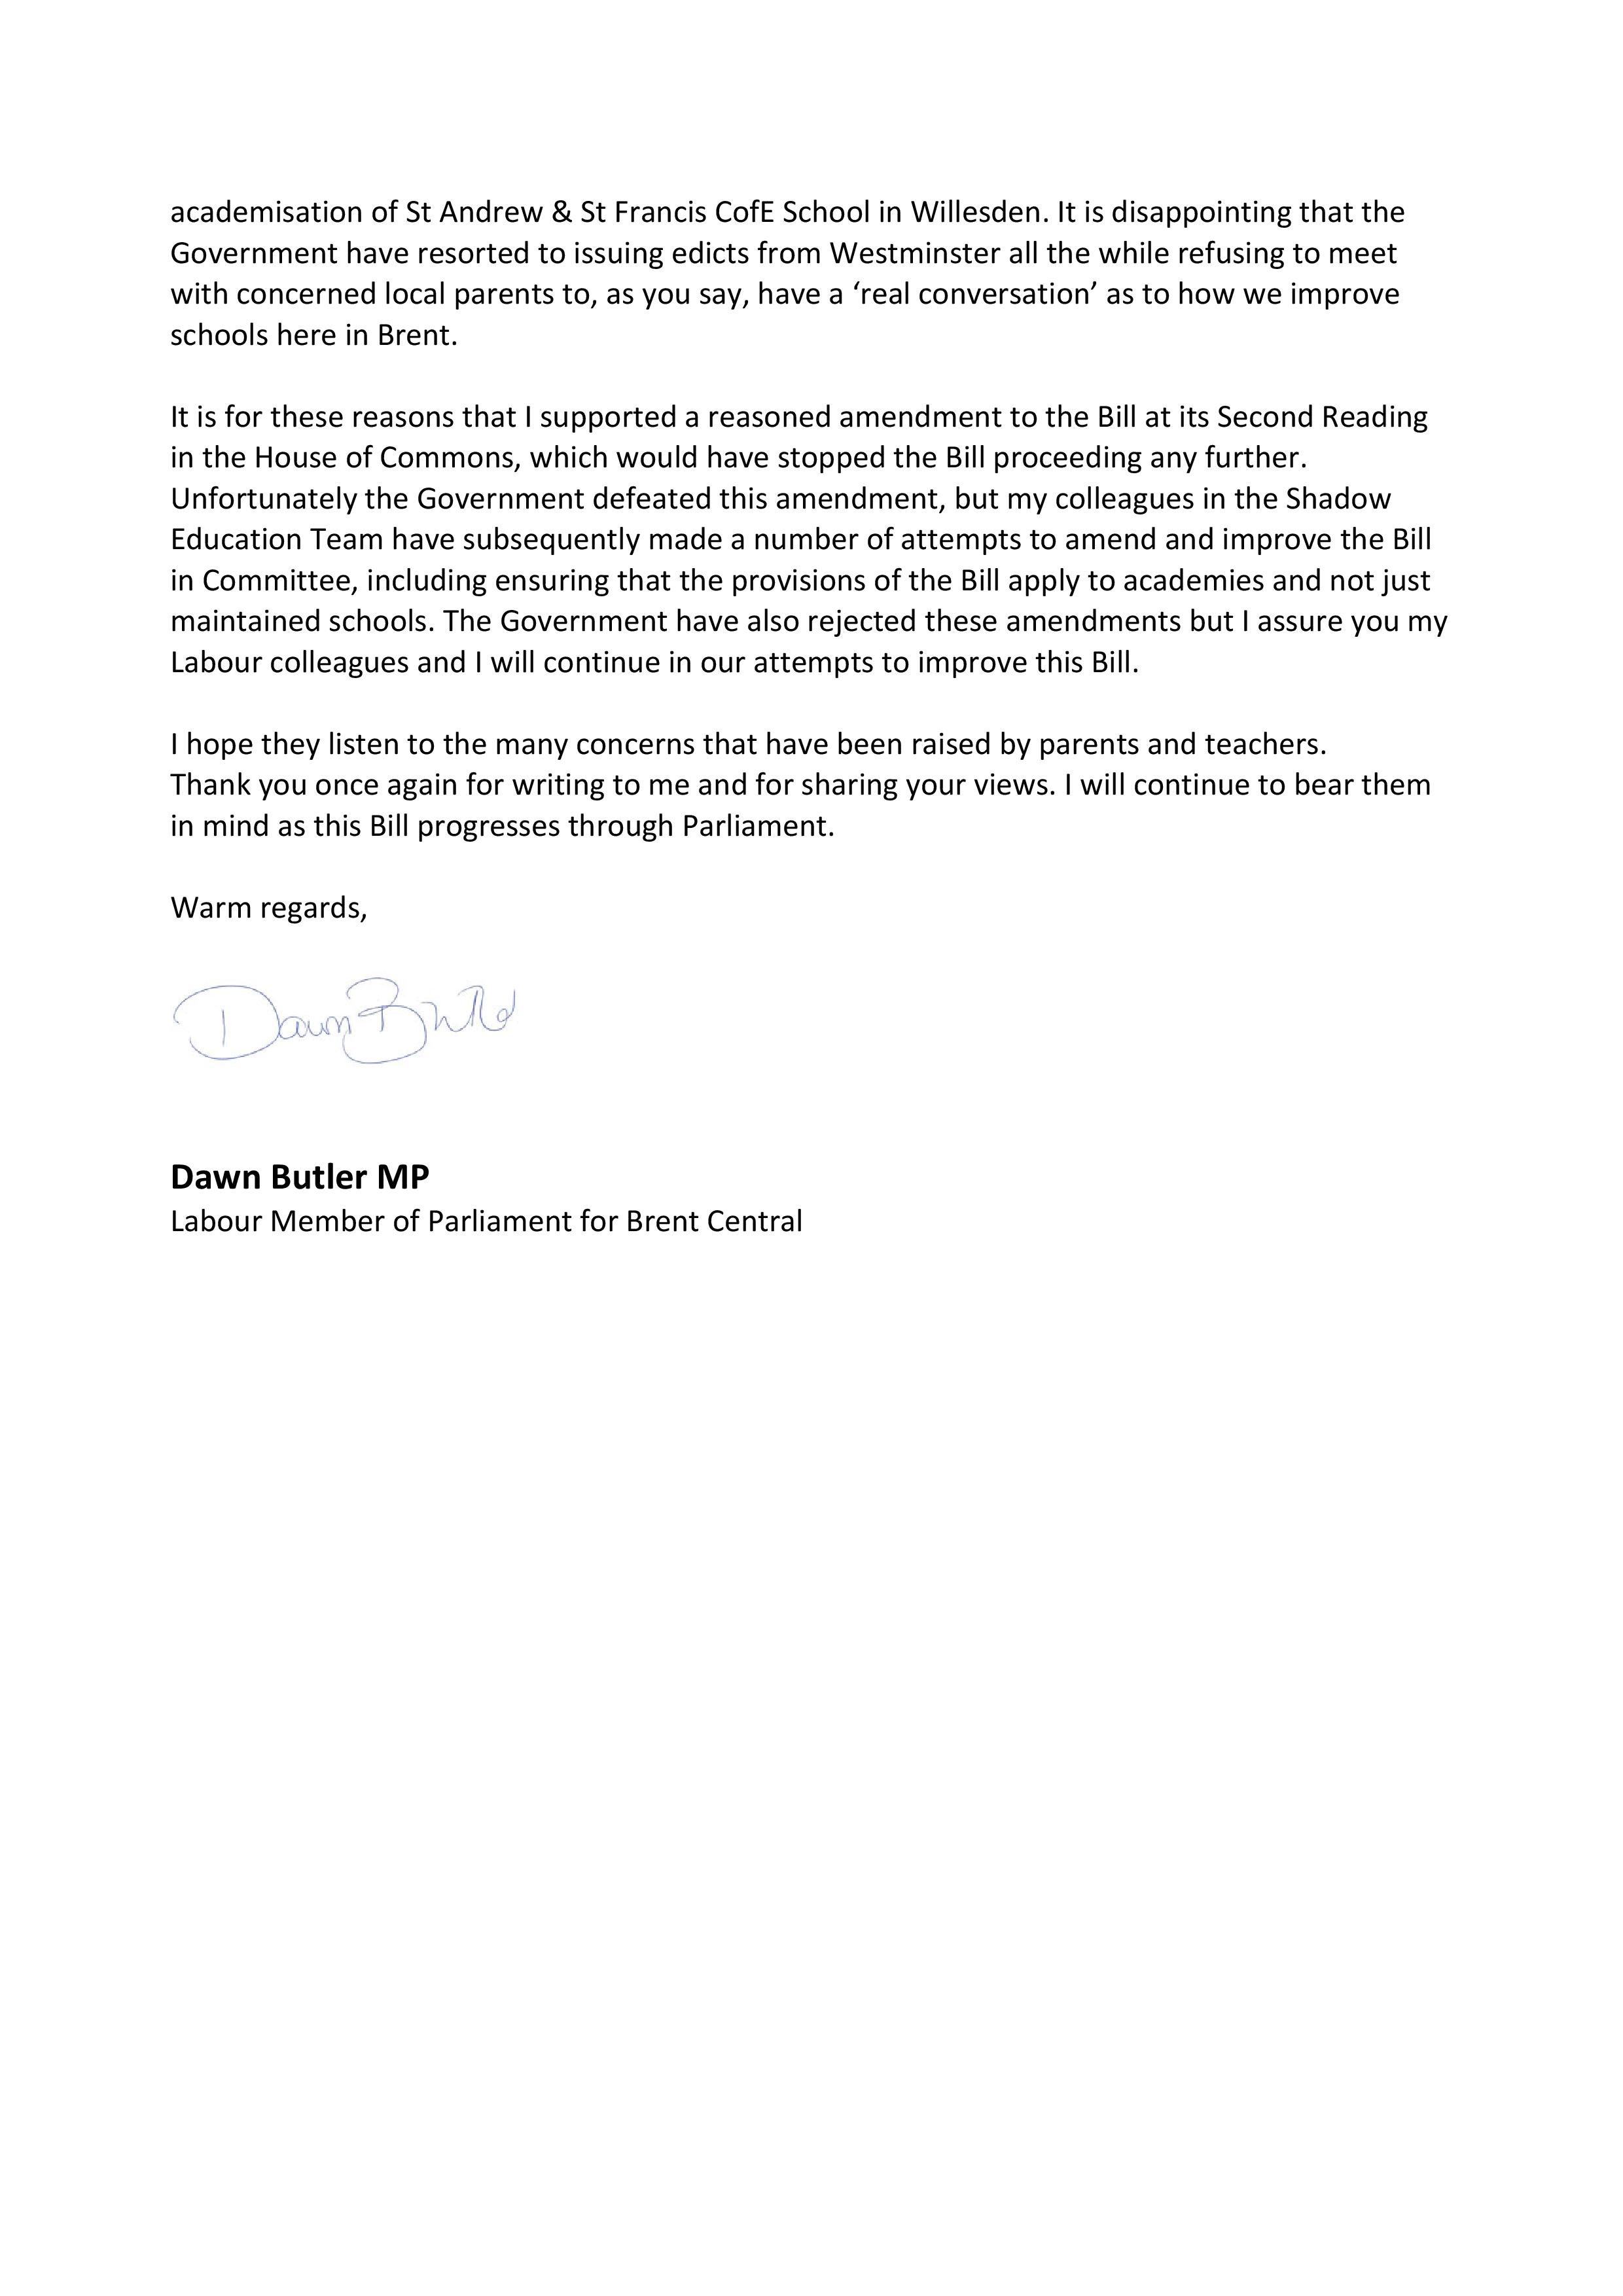 Education_and_Adoption_Bill_Letter-page-002.jpg